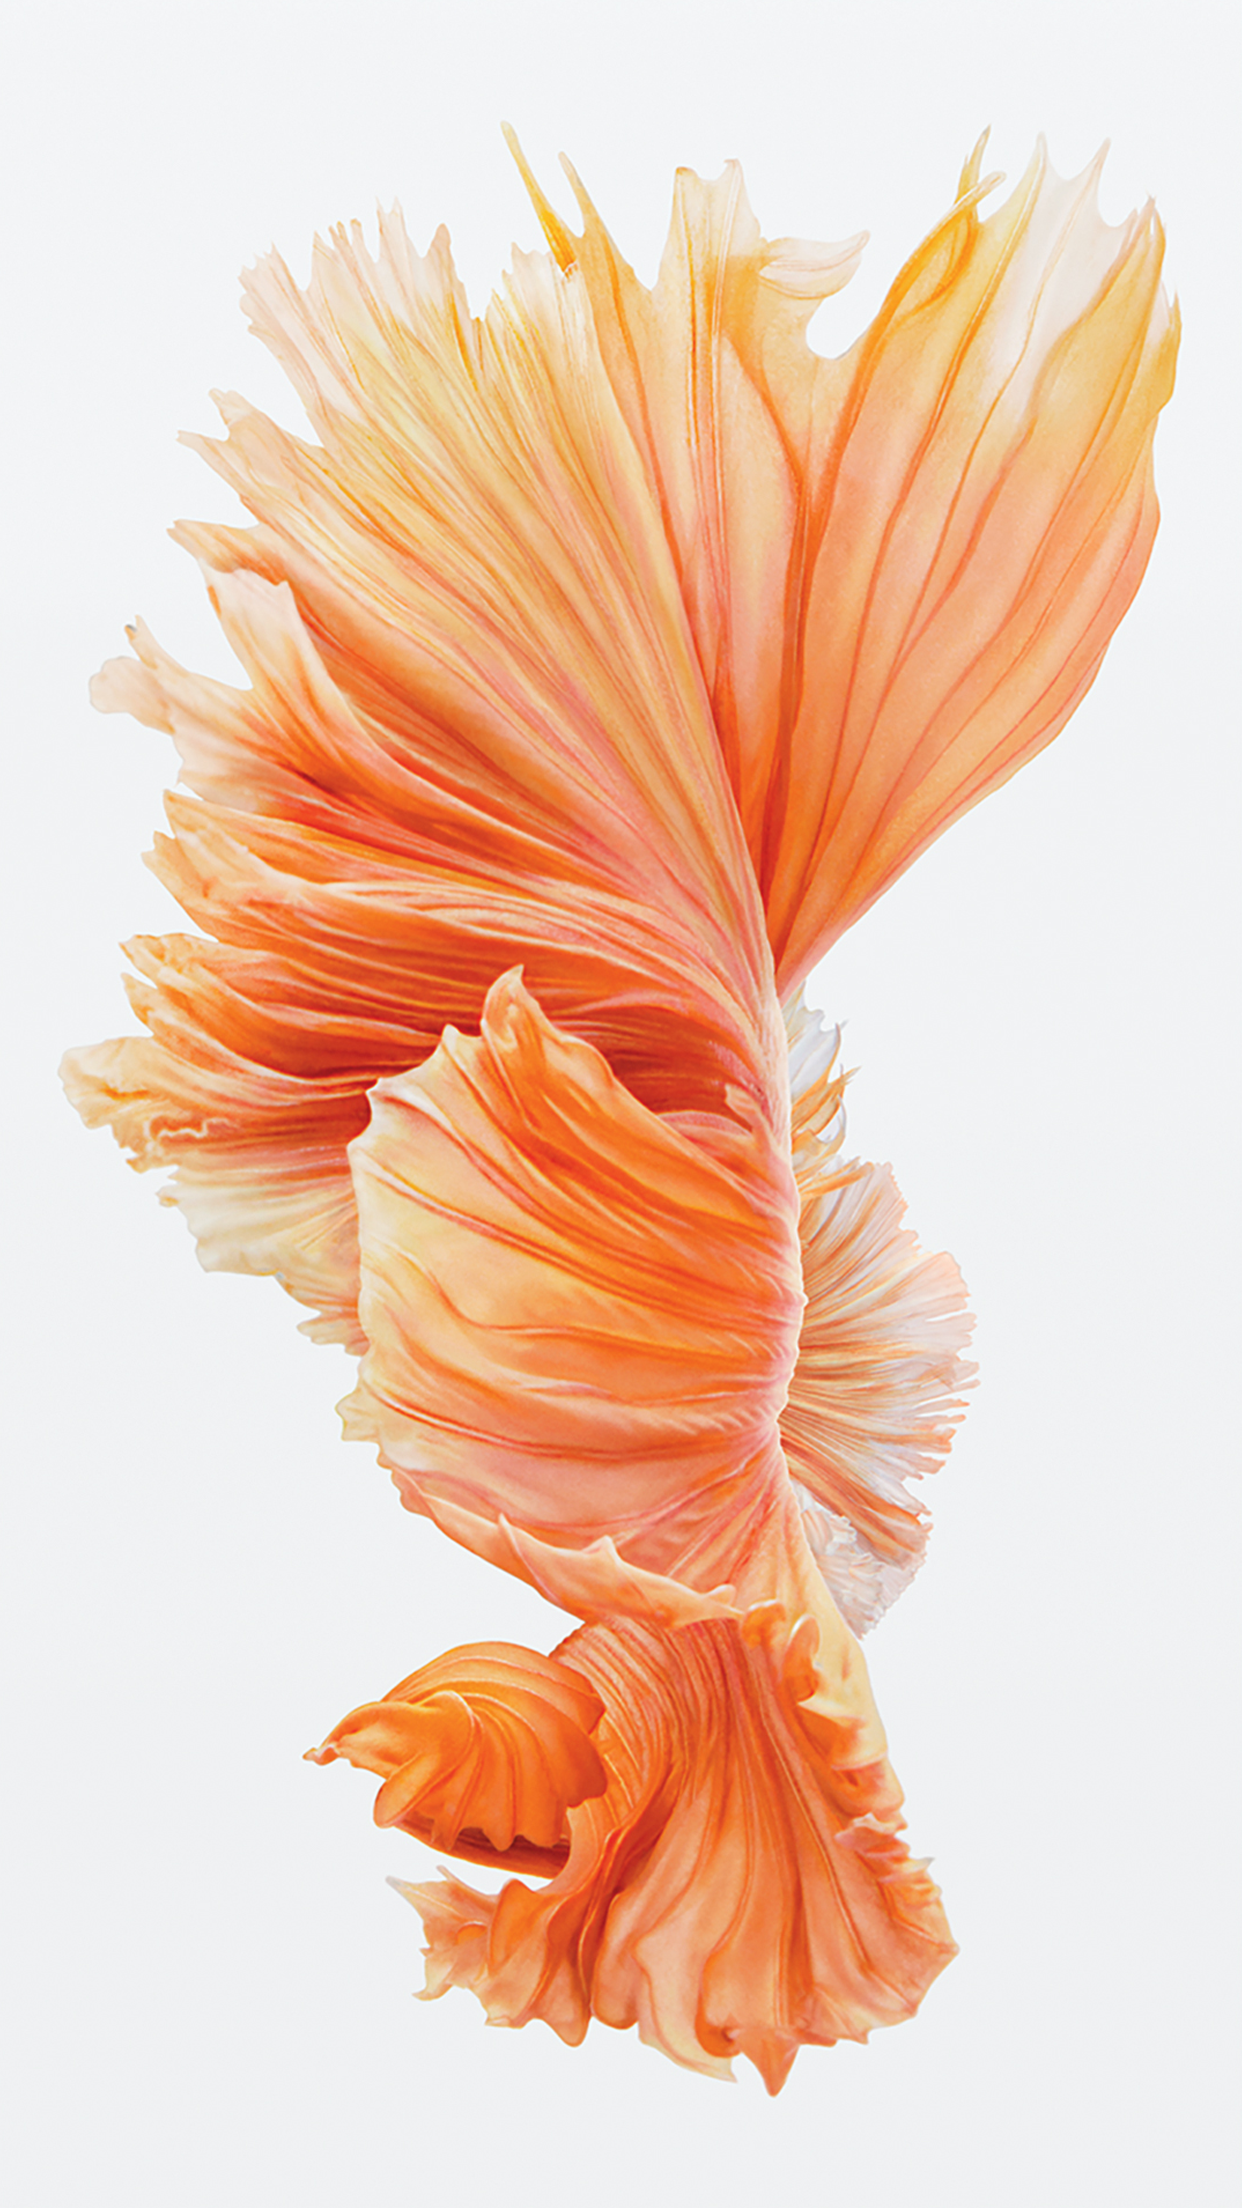 Free Download Wallpapers Of The Week Iphone 6s Still